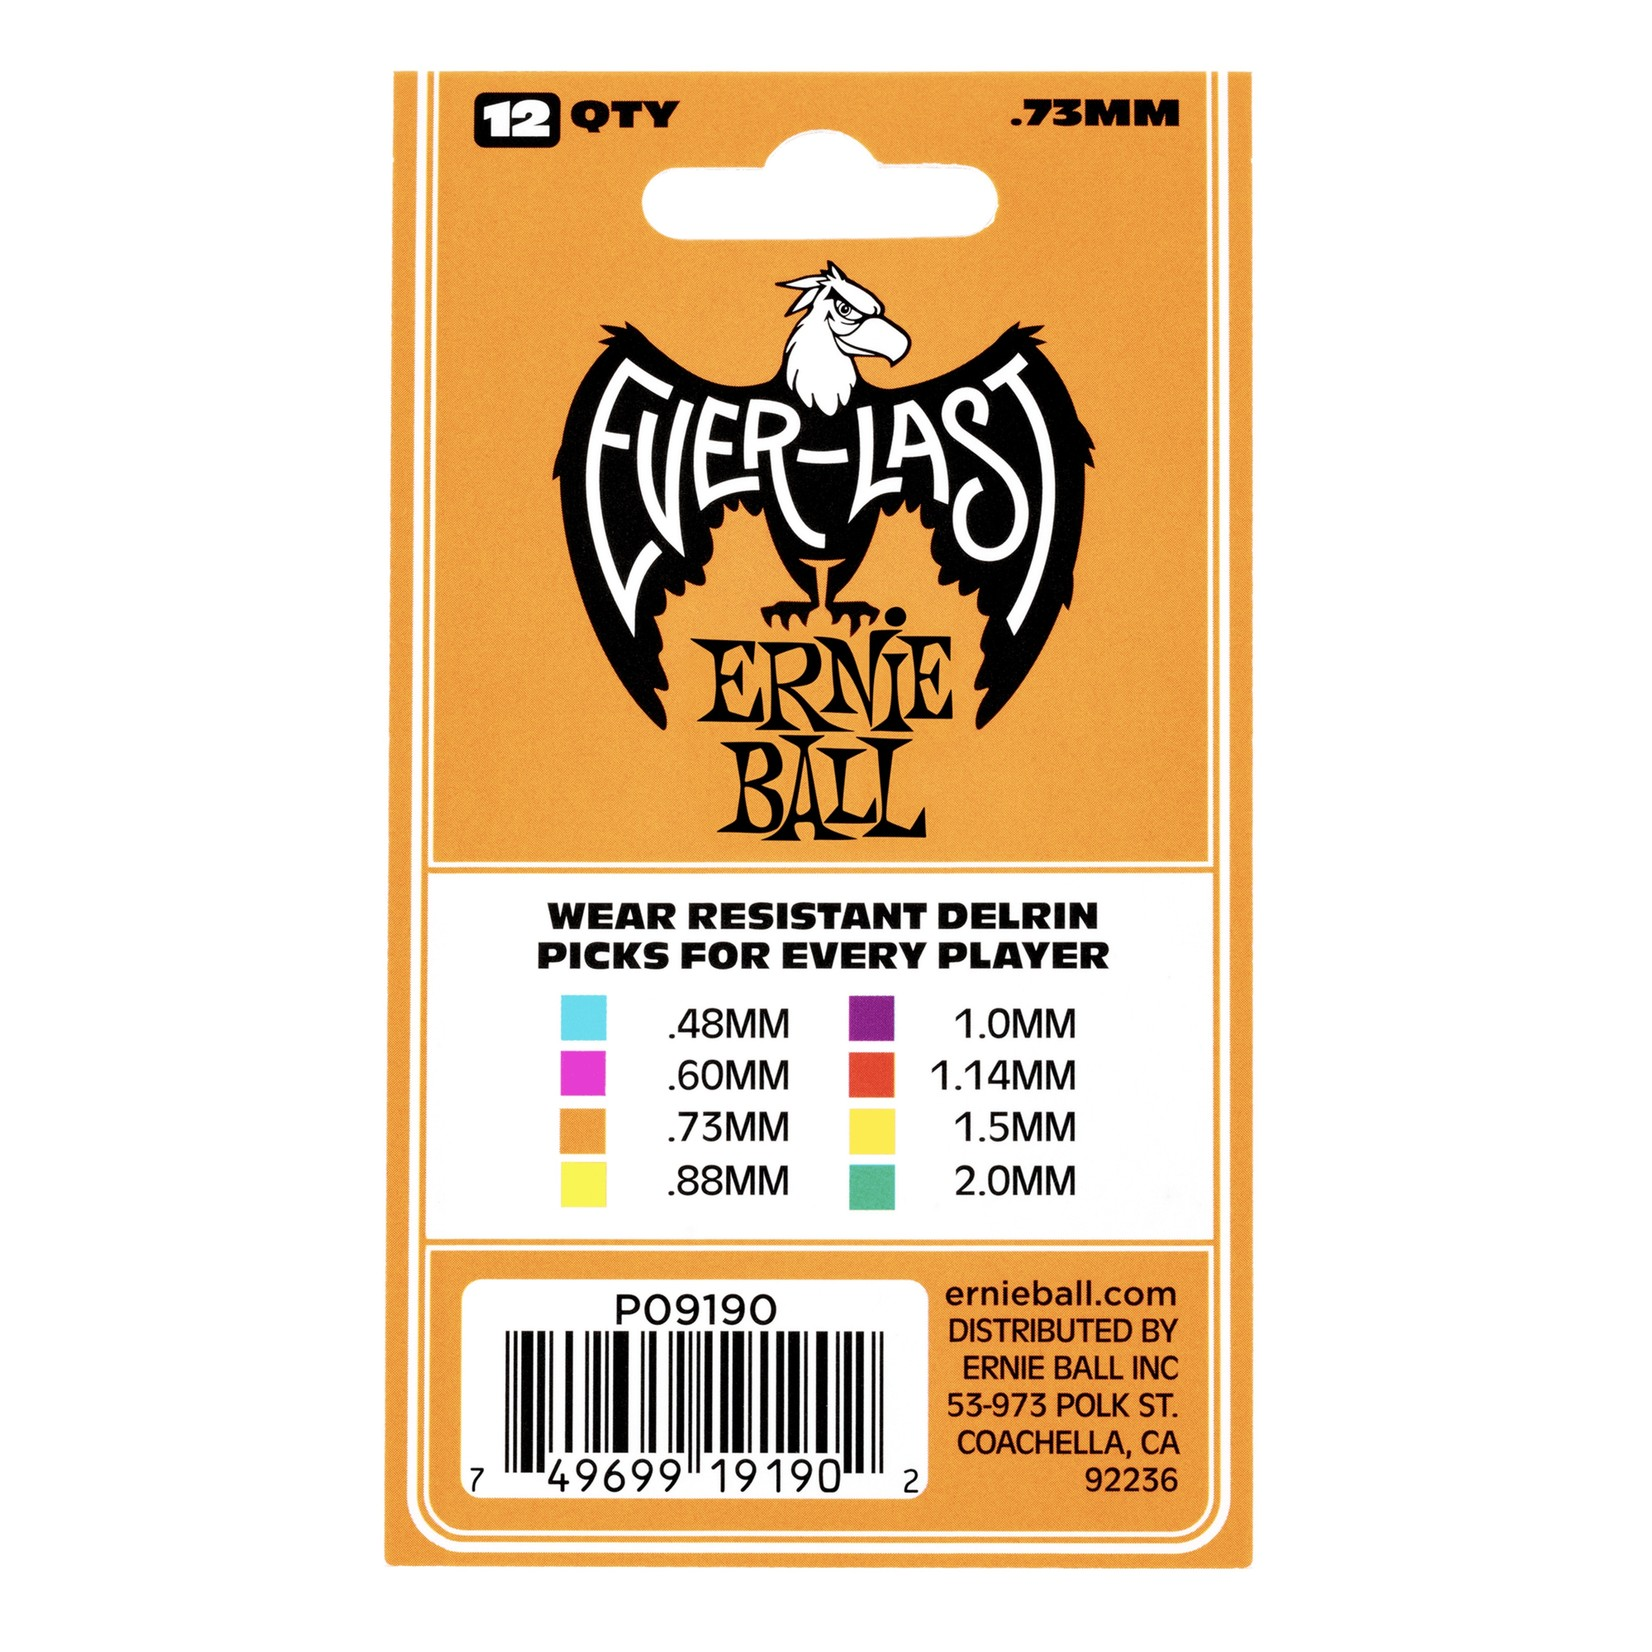 Ernie Ball Ernie Ball .73mm Orange Everlast Picks 12-pack